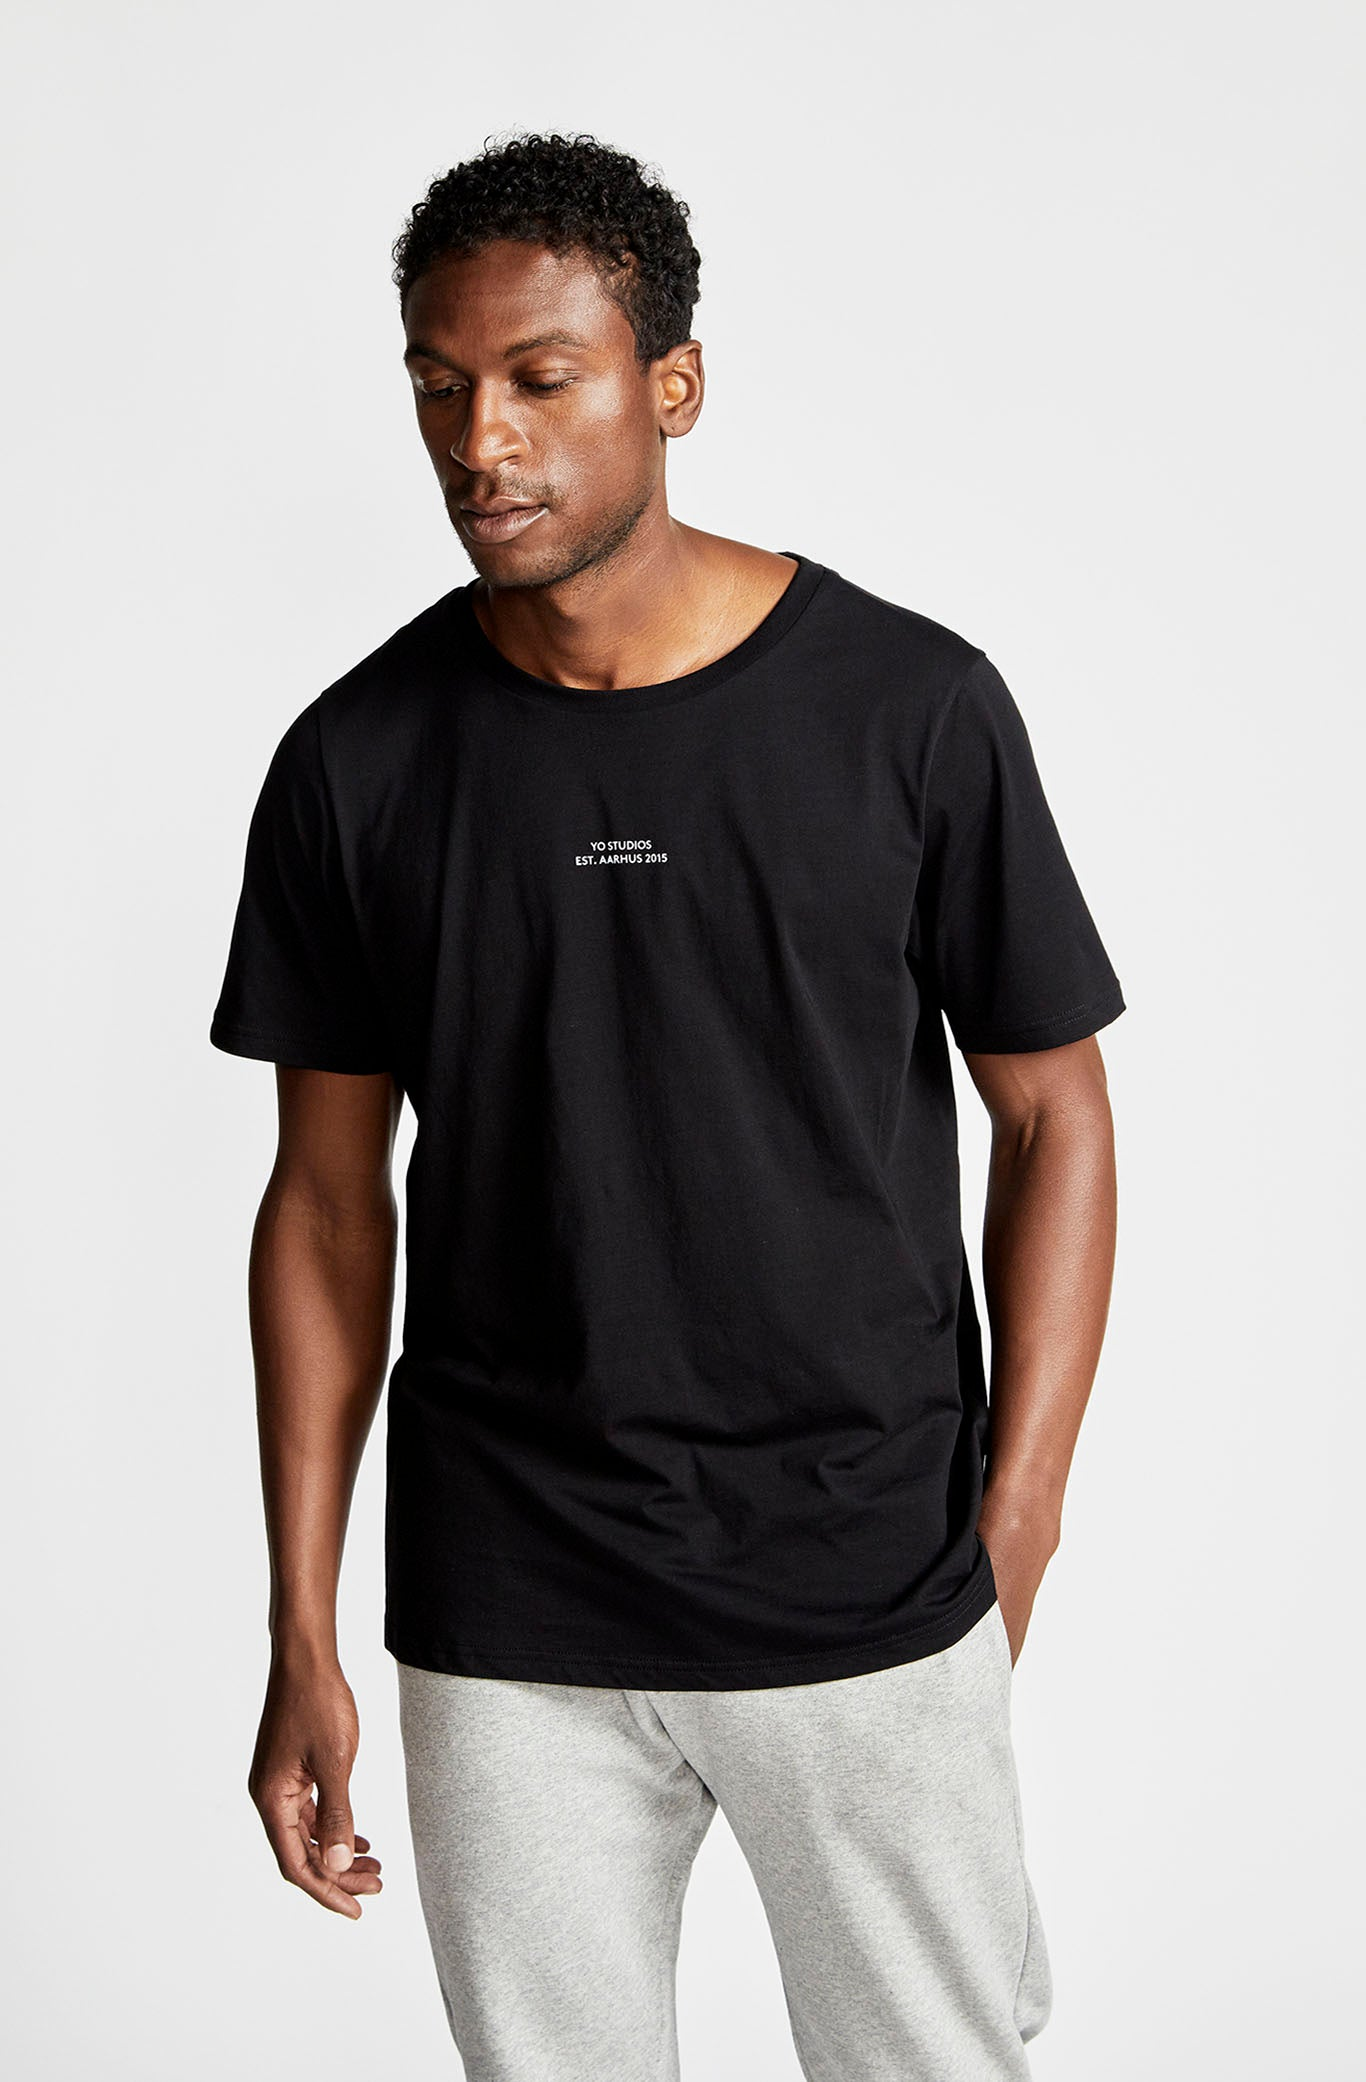 JACOB TEE 1 - YO COLLECTION 2.0 - BLACK